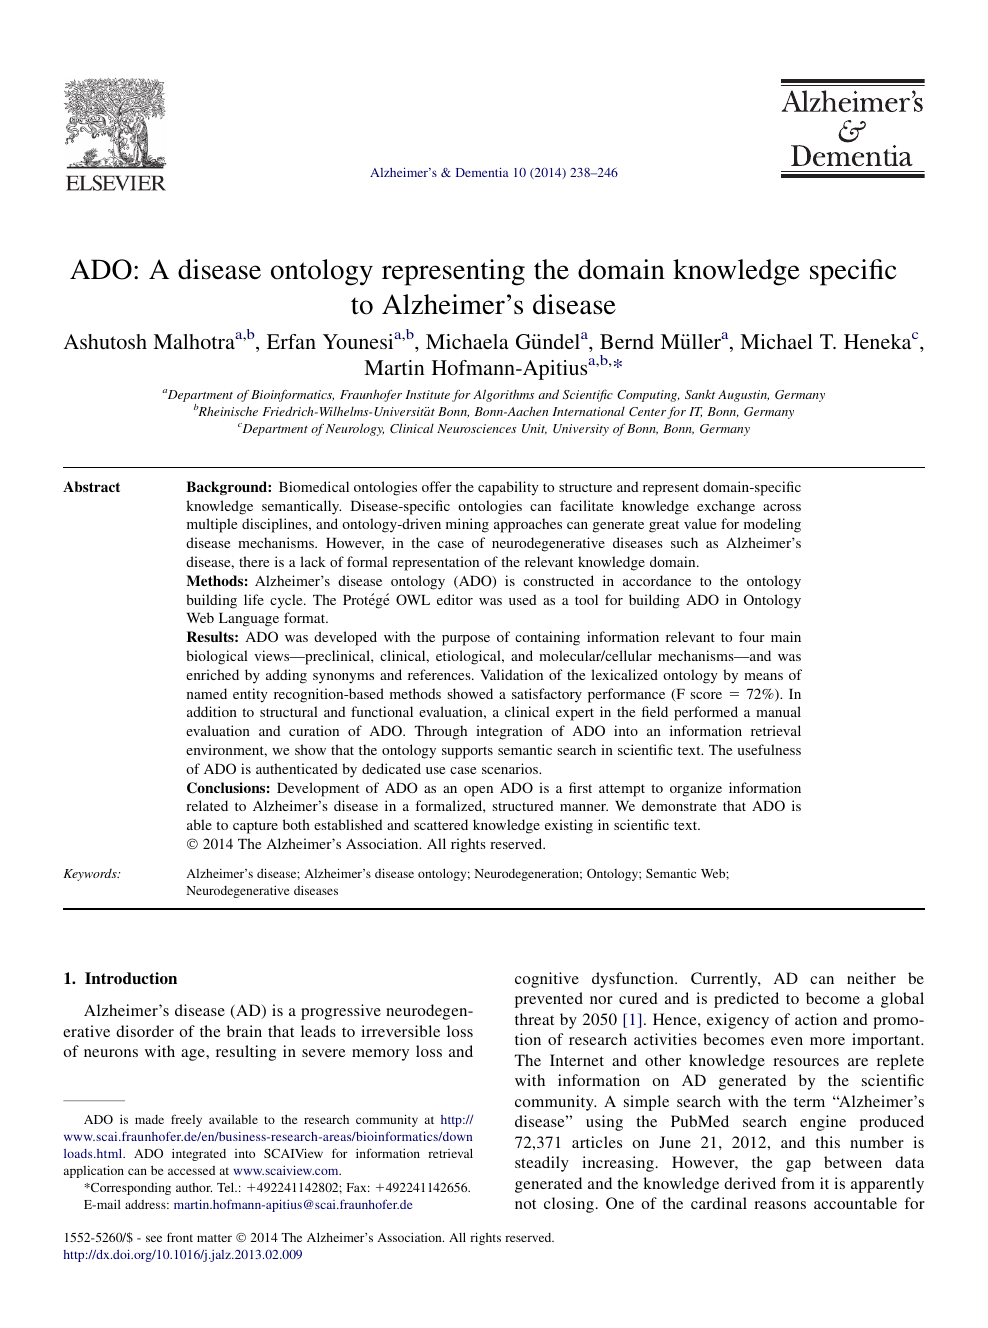 ADO: A disease ontology representing the domain knowledge